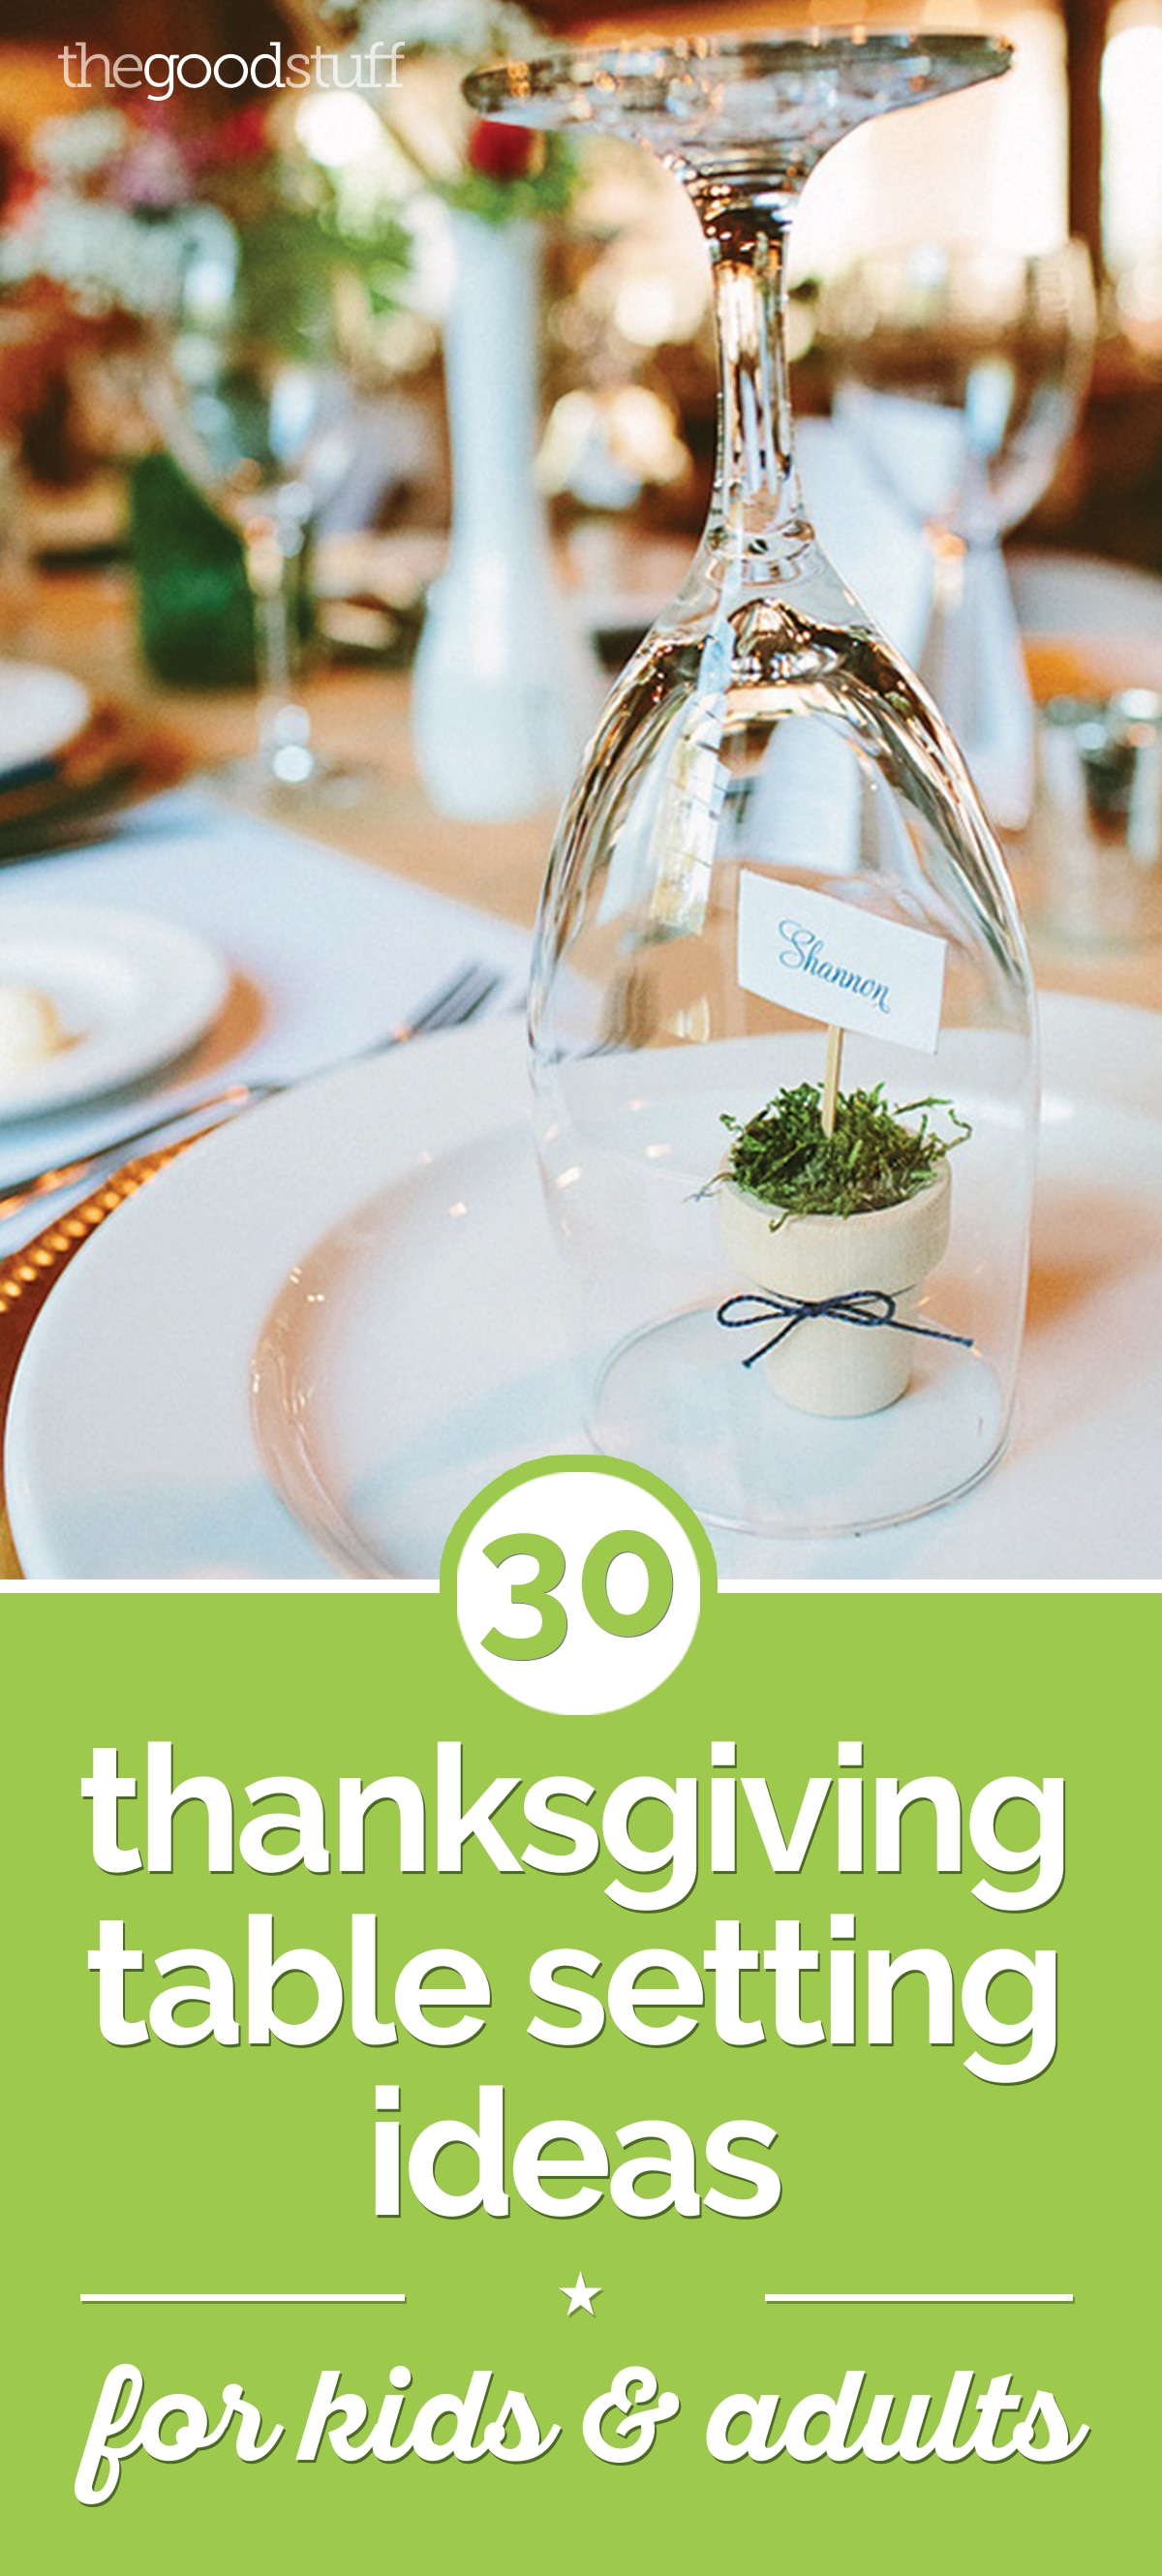 30 Thanksgiving Table Setting Ideas for Kids & Adults | thegoodstuff